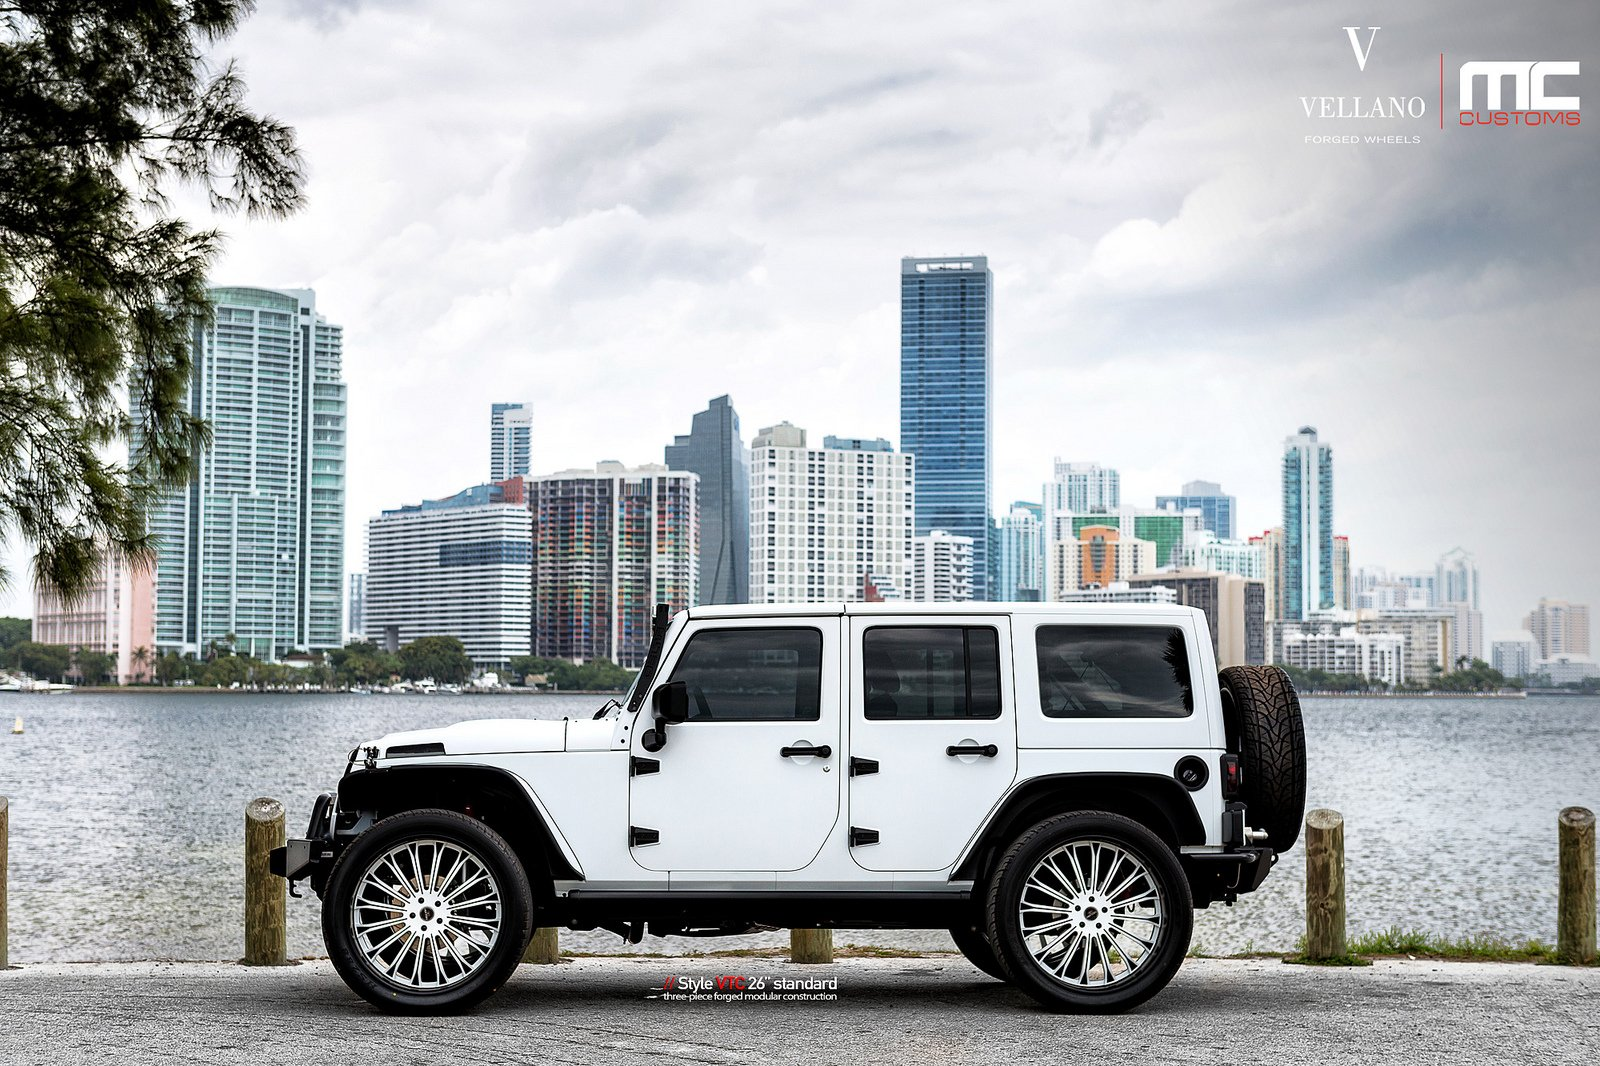 cars jeep tuning vellano wheels white wrangler wallpaper 1600x1066 392369 wallpaperup. Black Bedroom Furniture Sets. Home Design Ideas